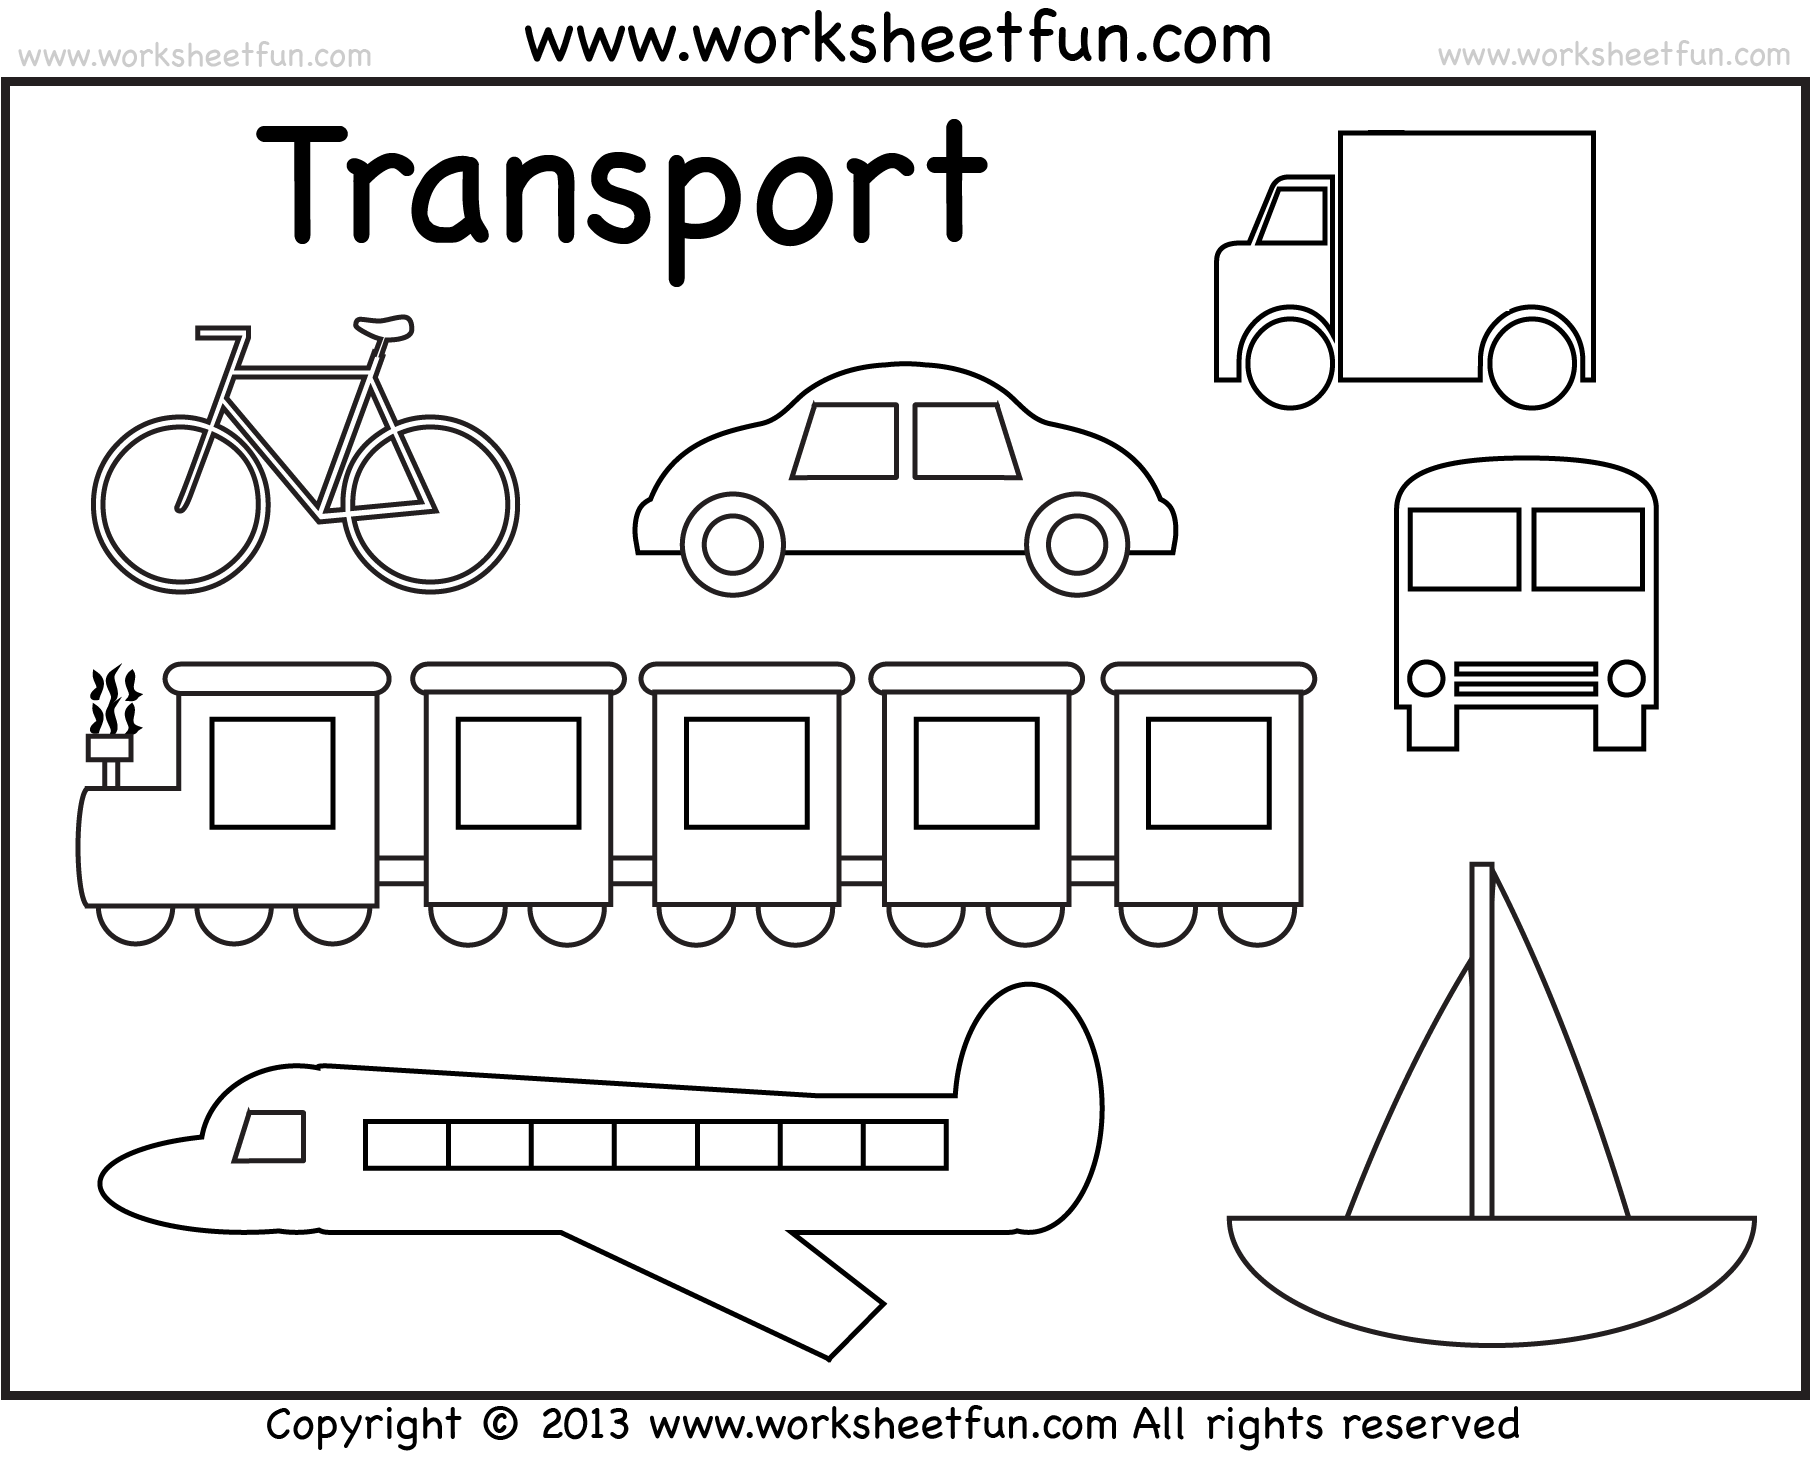 means of transportation lesson plan ideas preschool coloring pages transportation worksheet. Black Bedroom Furniture Sets. Home Design Ideas